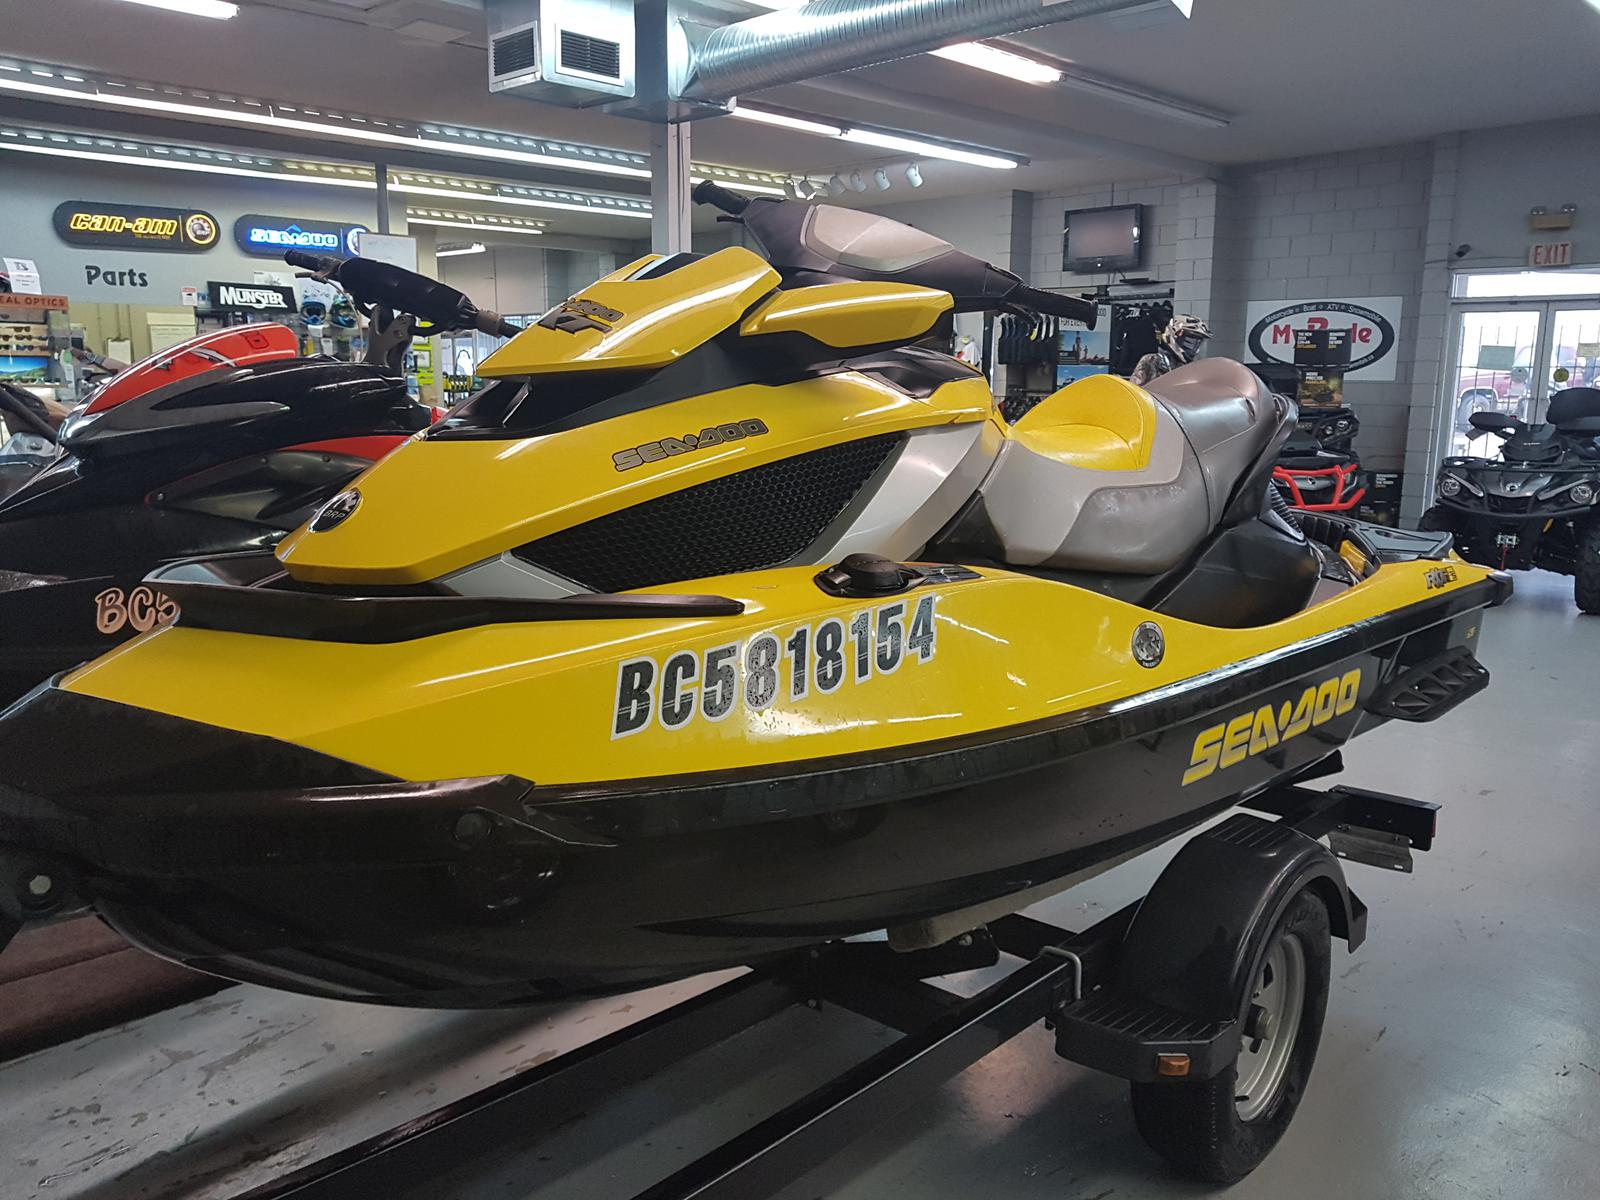 Inventory from Sea-Doo and BMW Banner Recreation & Marine